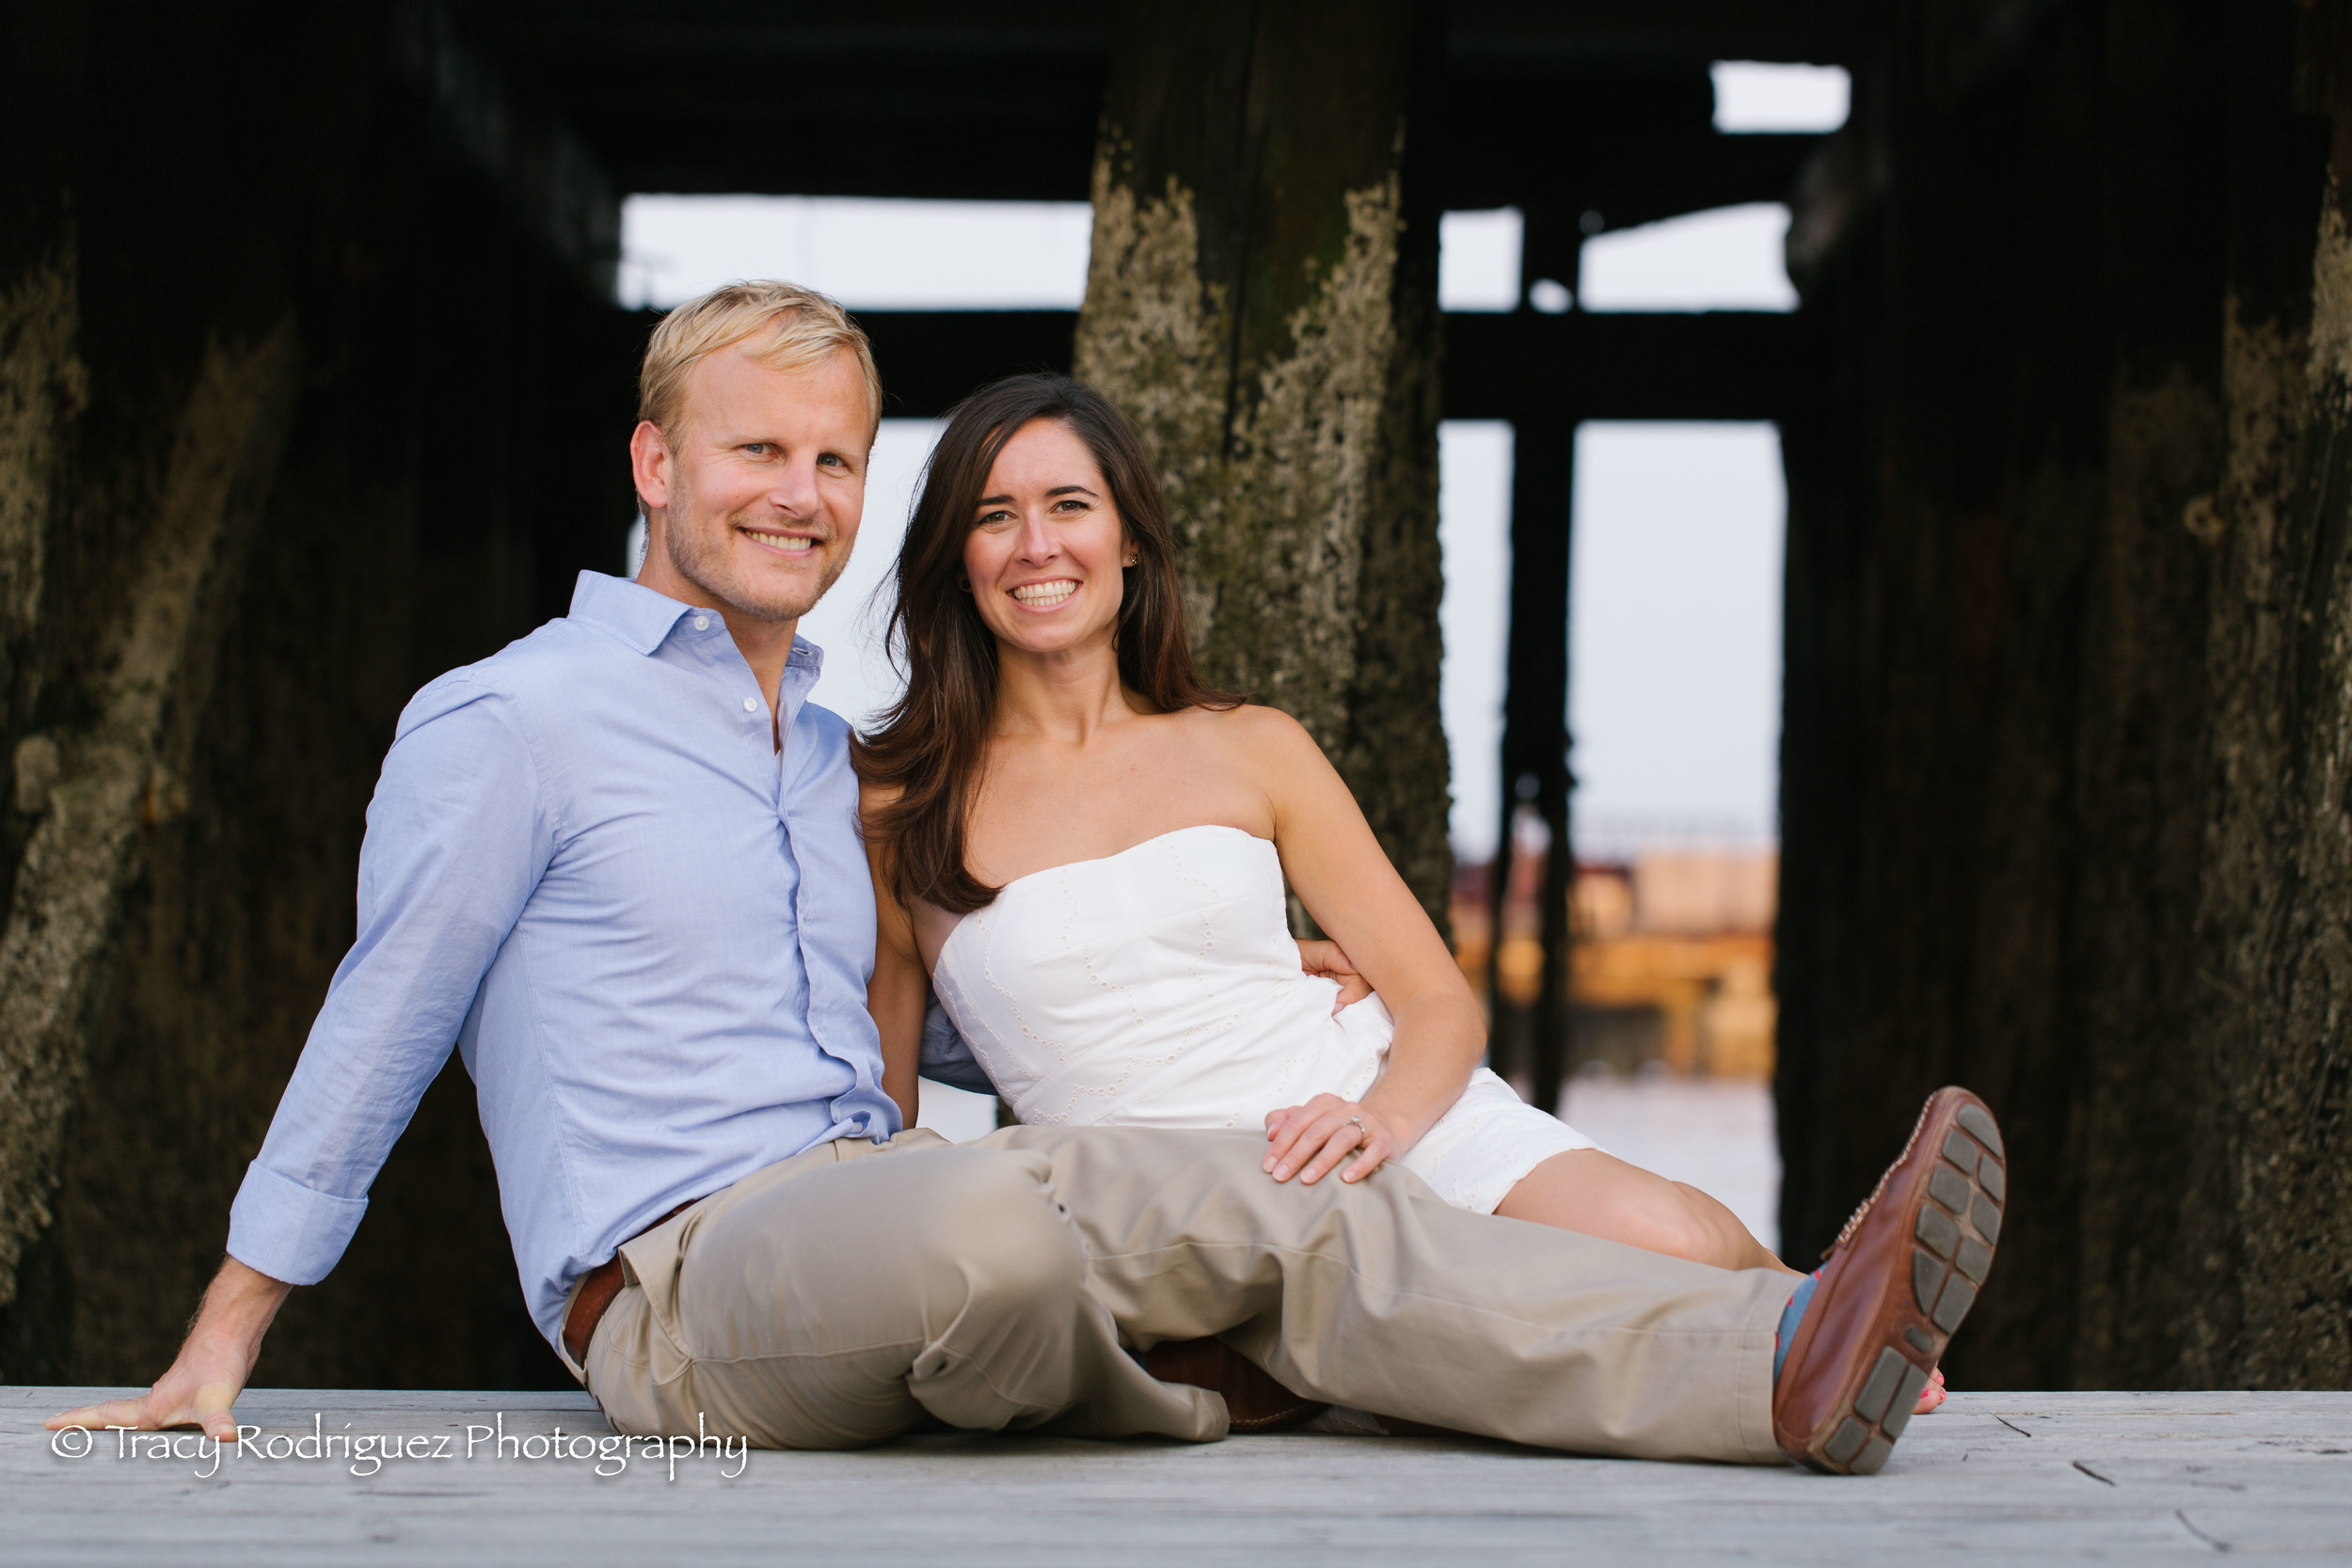 TracyRodriguezPhotography-Engagement-LowRes-32.jpg